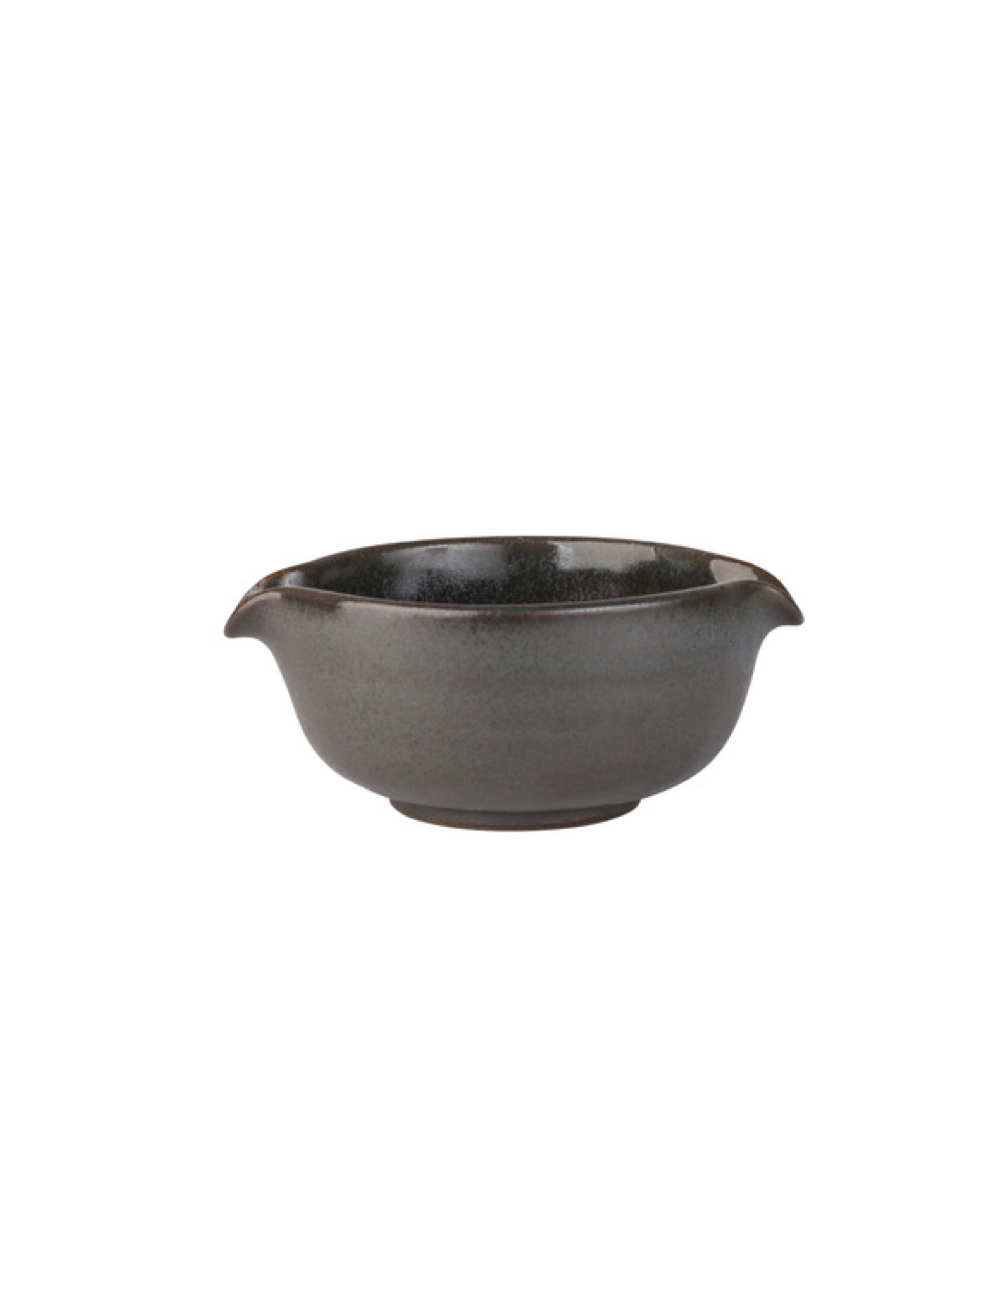 Grafit Small Sauce Bowl C/O Lantliv